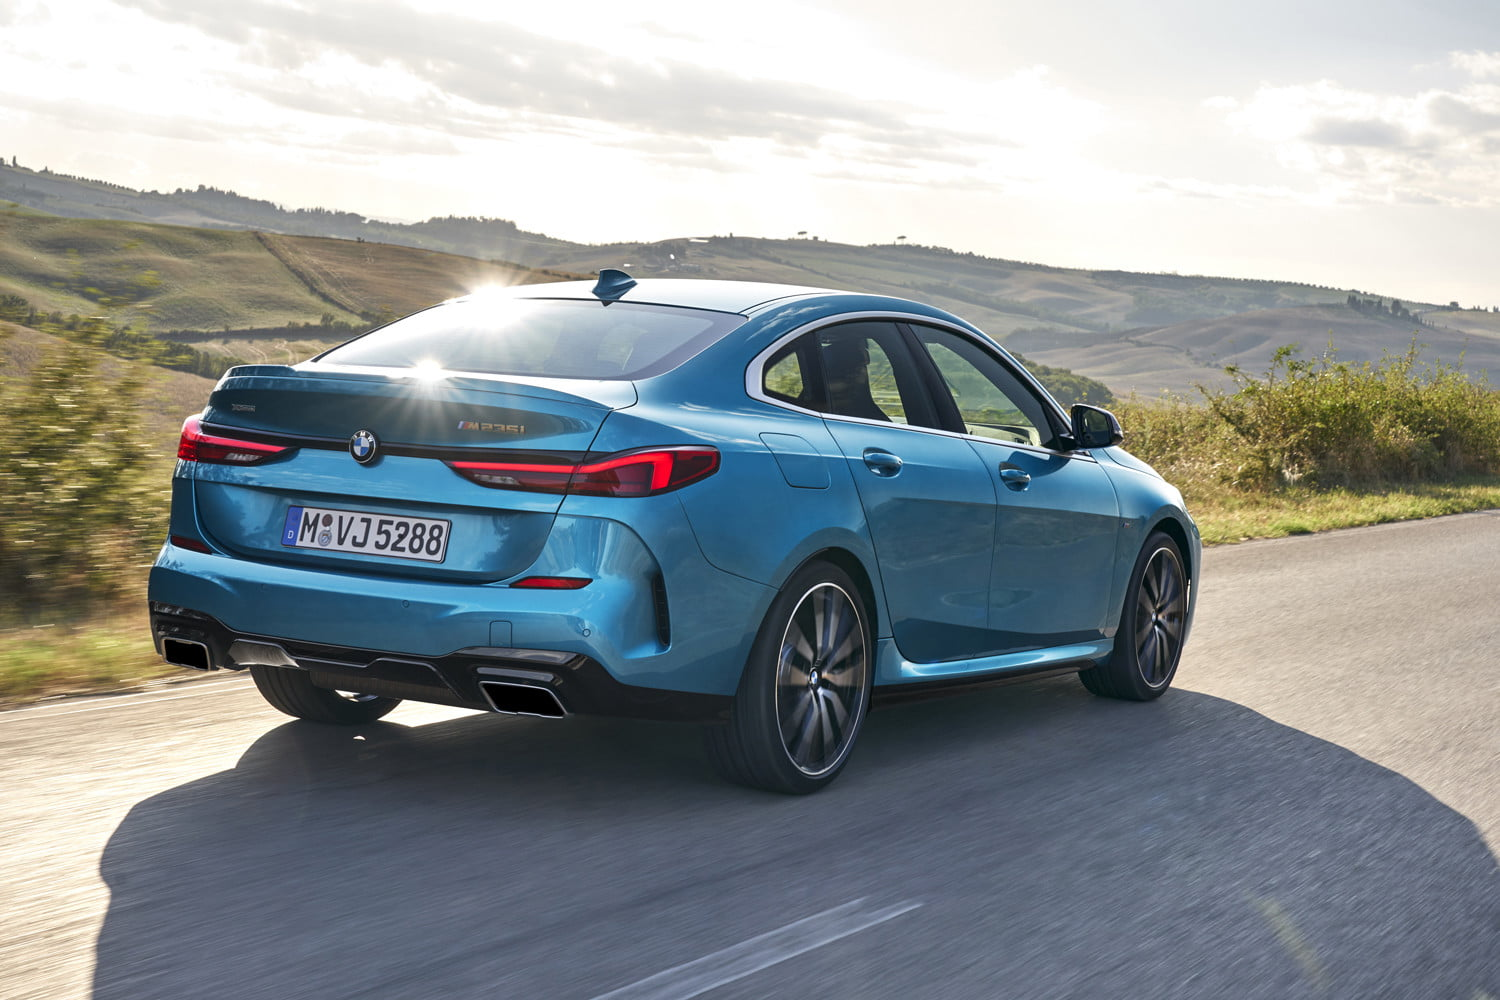 2020 bmw 228i m235i gran coupe unveiled as entry level sedans 2 series gc off 5